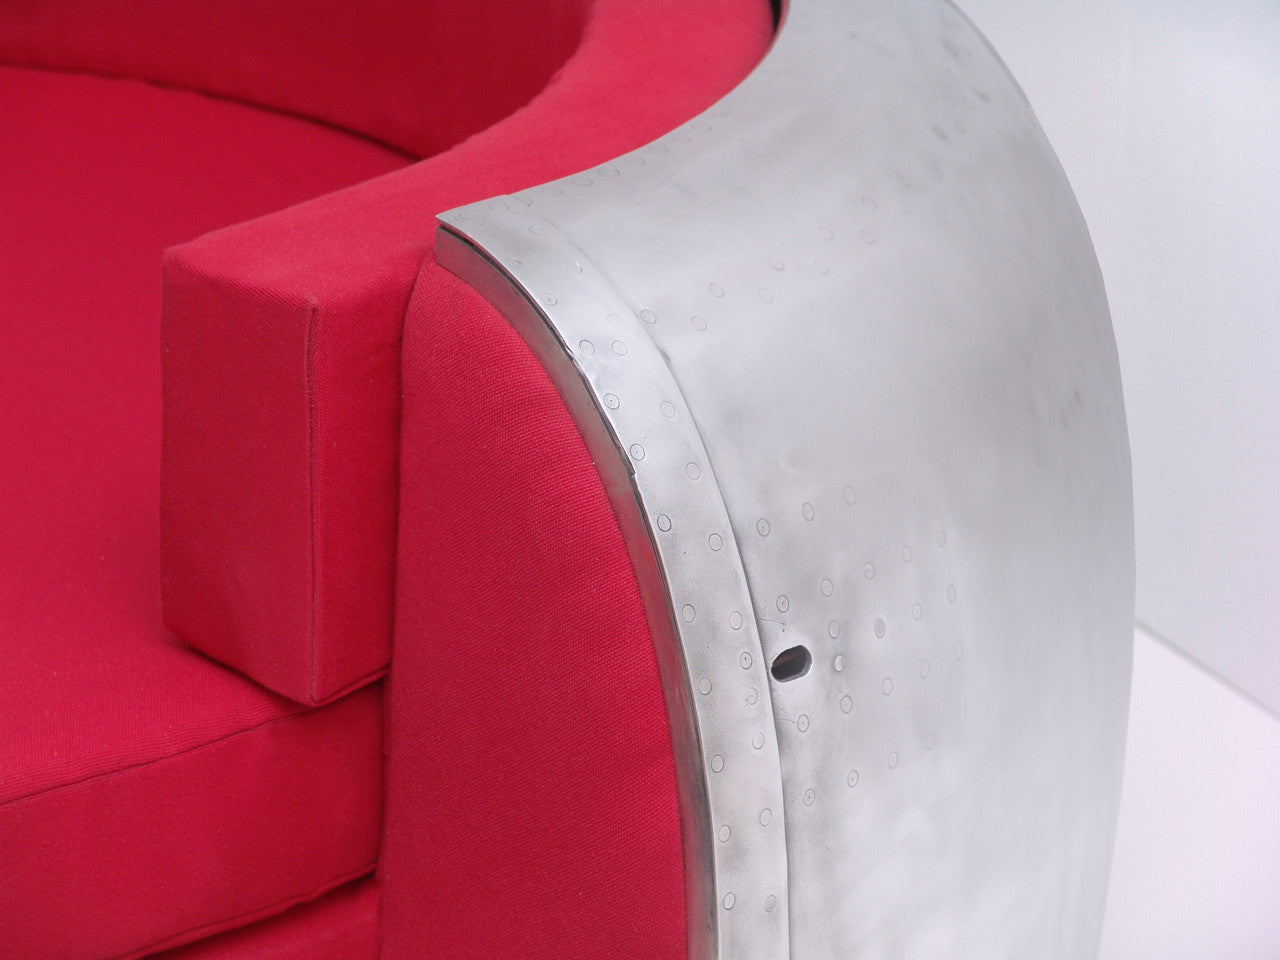 C45 Cowling Couch